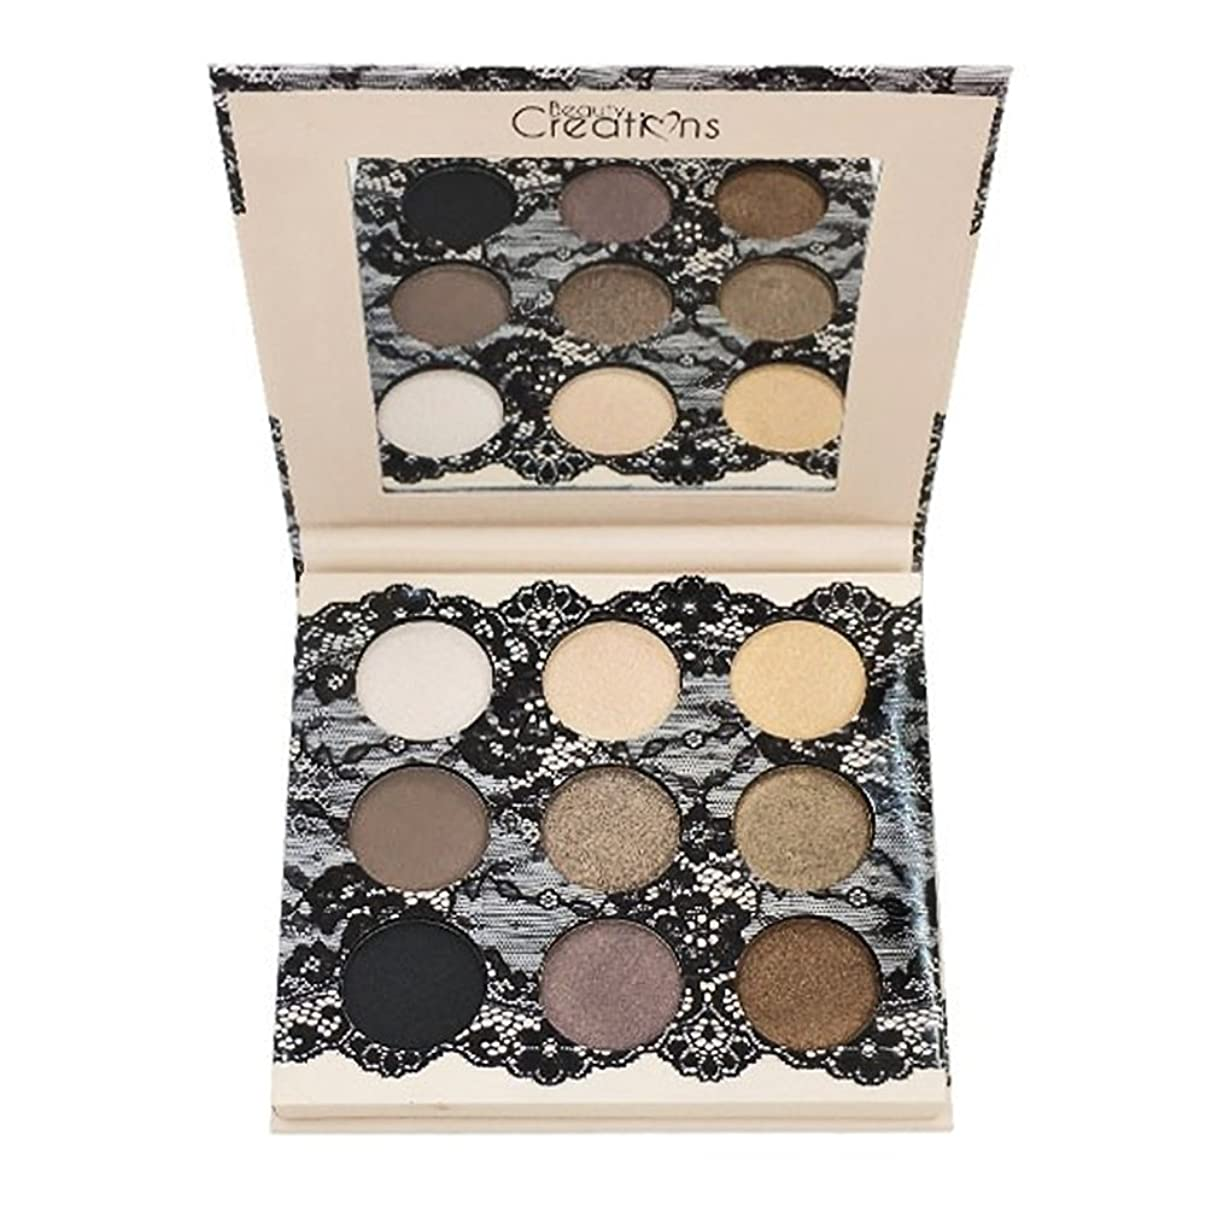 反映する吸収する文芸(6 Pack) BEAUTY CREATIONS Boudoir Shadows 9 Shades Eyeshadow Palette - B (並行輸入品)